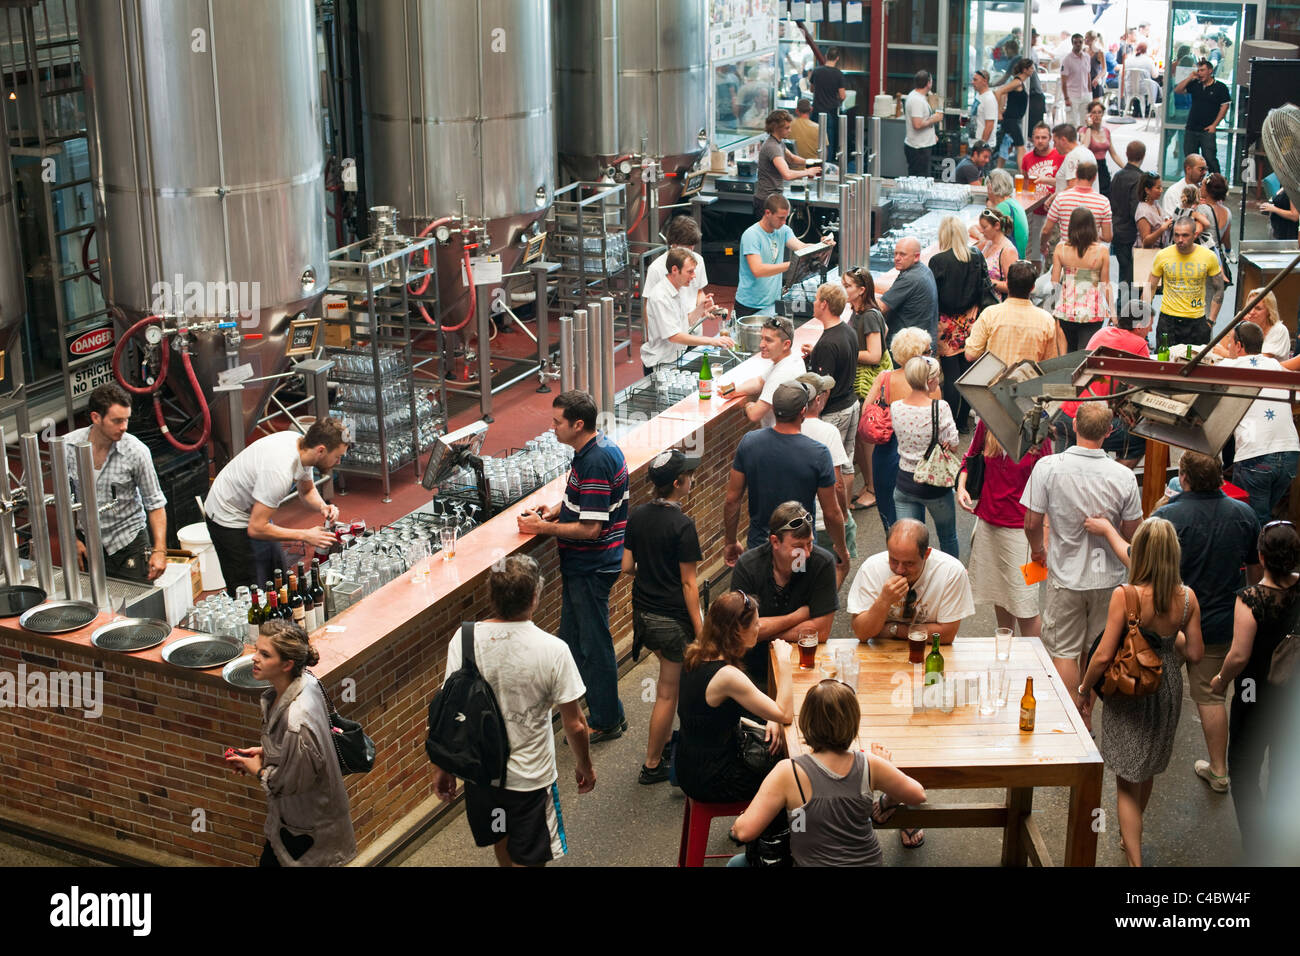 Little Creatures brewery at Fishing Boat Harbour. Fremantle, Western Australia, Australia - Stock Image